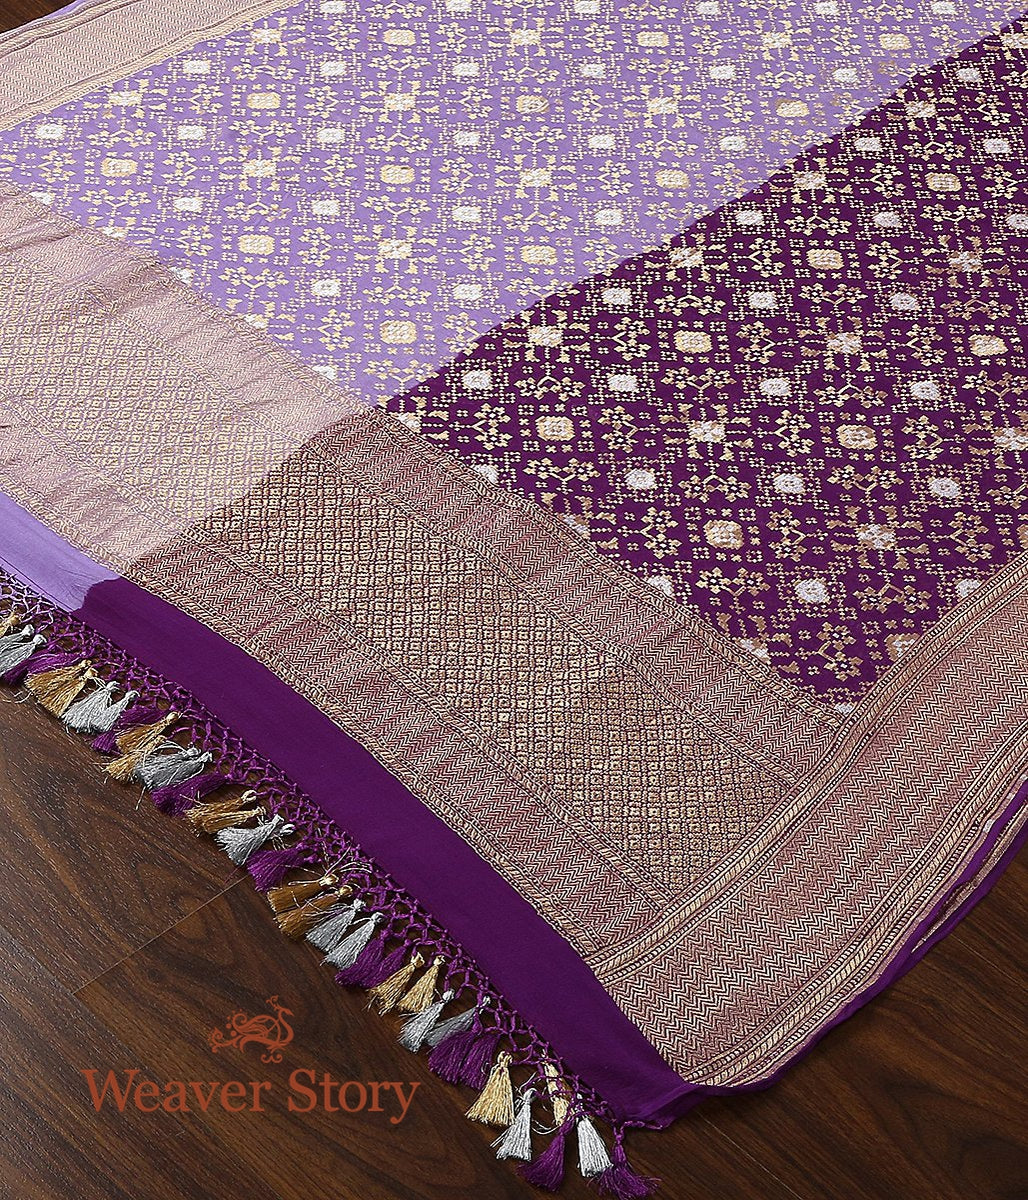 Handwoven Banarasi Georgette Cutwork Dupatta in Dual Shade of Plum and Lavender